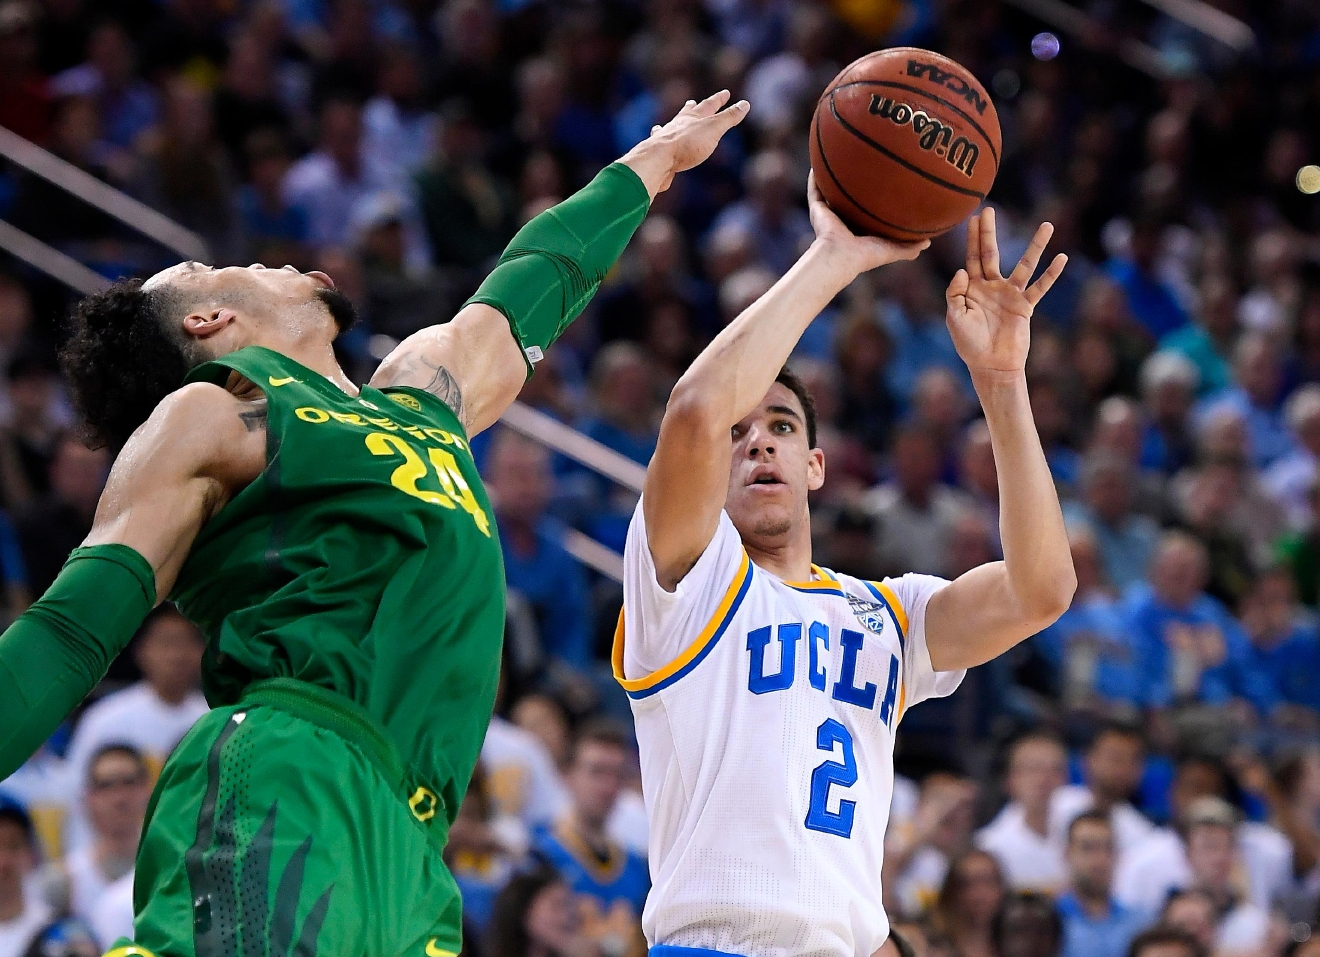 UCLA guard Lonzo Ball, right, shoots as Oregon forward Dillon Brooks defends during the second half of an NCAA college basketball game, Thursday, Feb. 9, 2017, in Los Angeles. UCLA won 82-79. (AP Photo/Mark J. Terrill)